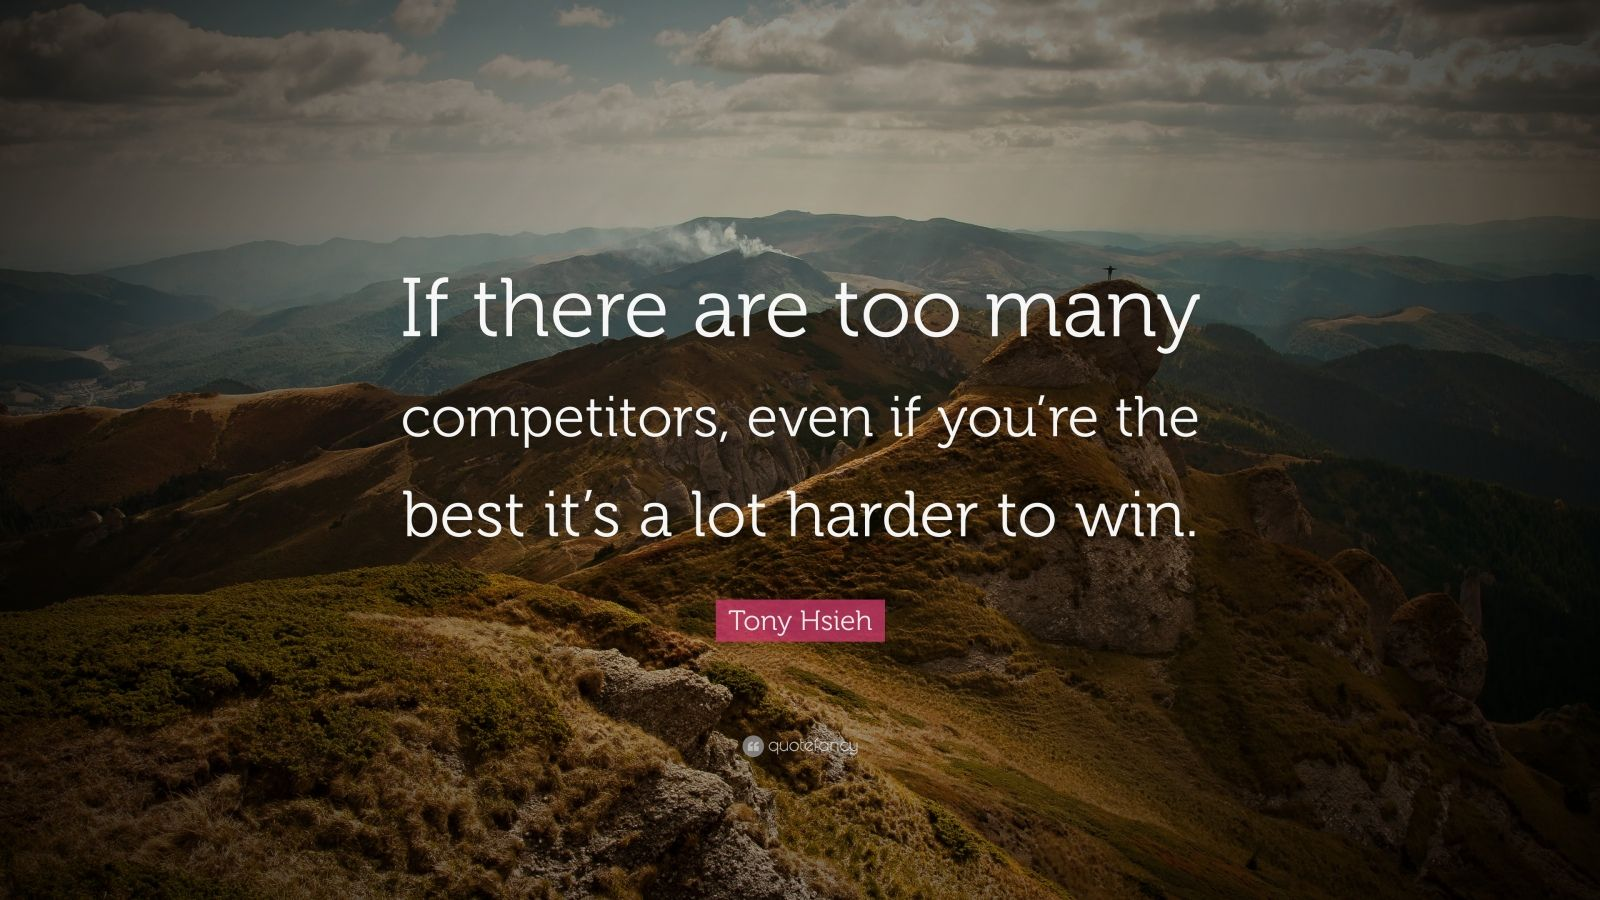 """Tony Hsieh Quote: """"If there are too many competitors, even if you're the best it's a lot harder to win."""""""